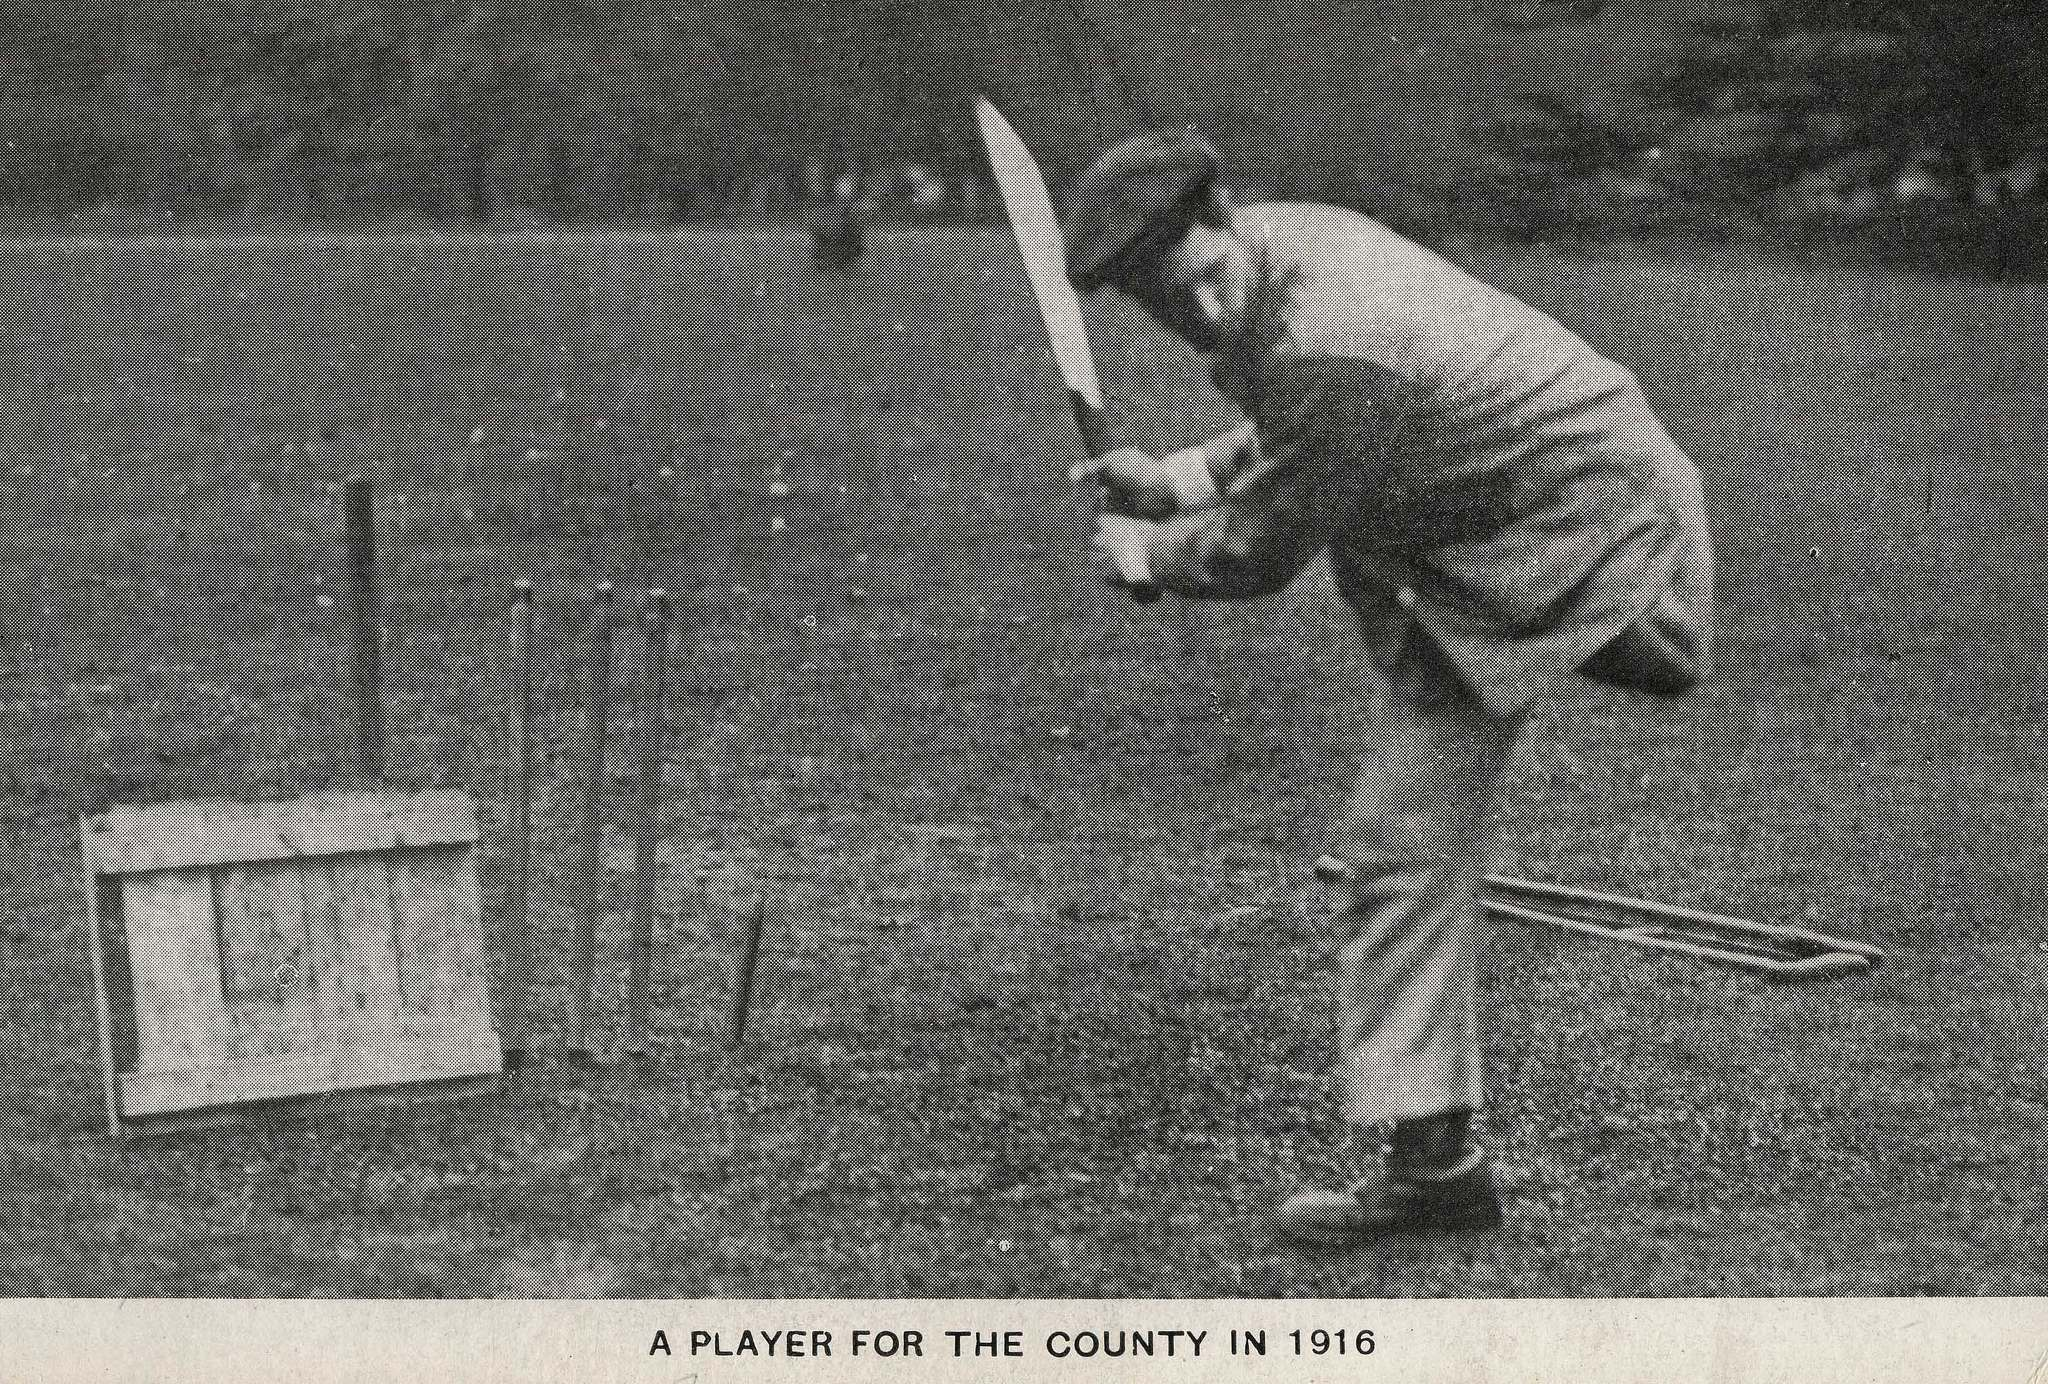 Cricketer, Queen Mary's Hospital Roehampton, 1916